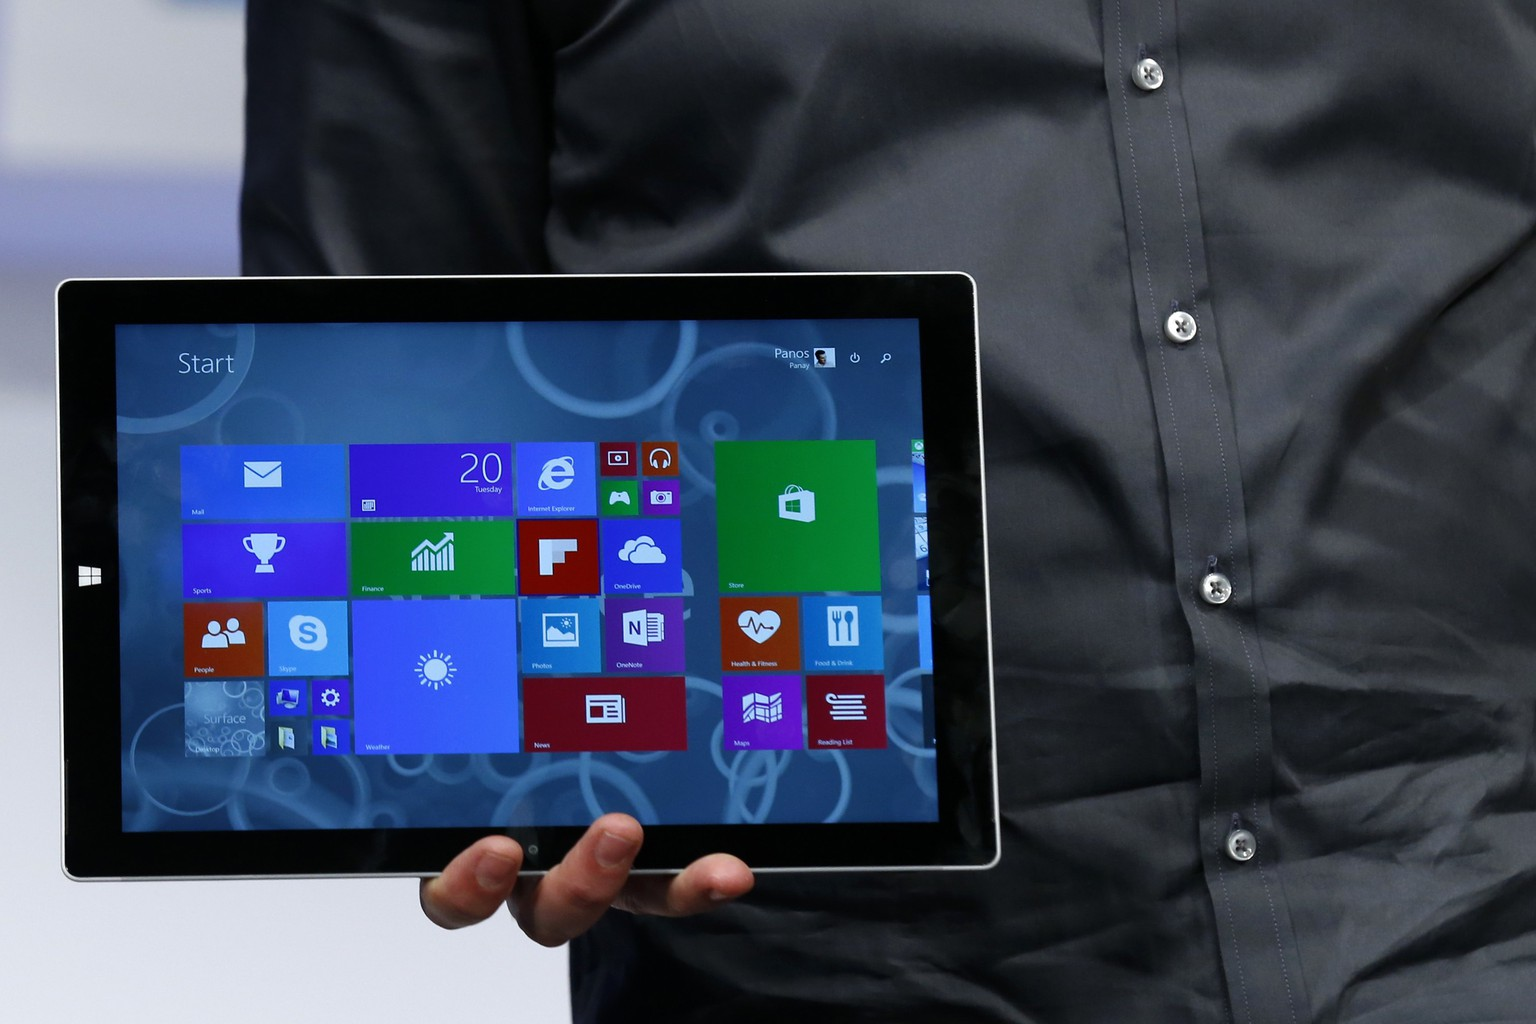 Panos Panay, Corp. Vice President for Surface Computing at Microsoft Corp, unveils the latest models of the Surface tablet in New York May 20, 2014.   REUTERS/Brendan McDermid (UNITED STATES - Tags: SCIENCE TECHNOLOGY BUSINESS)